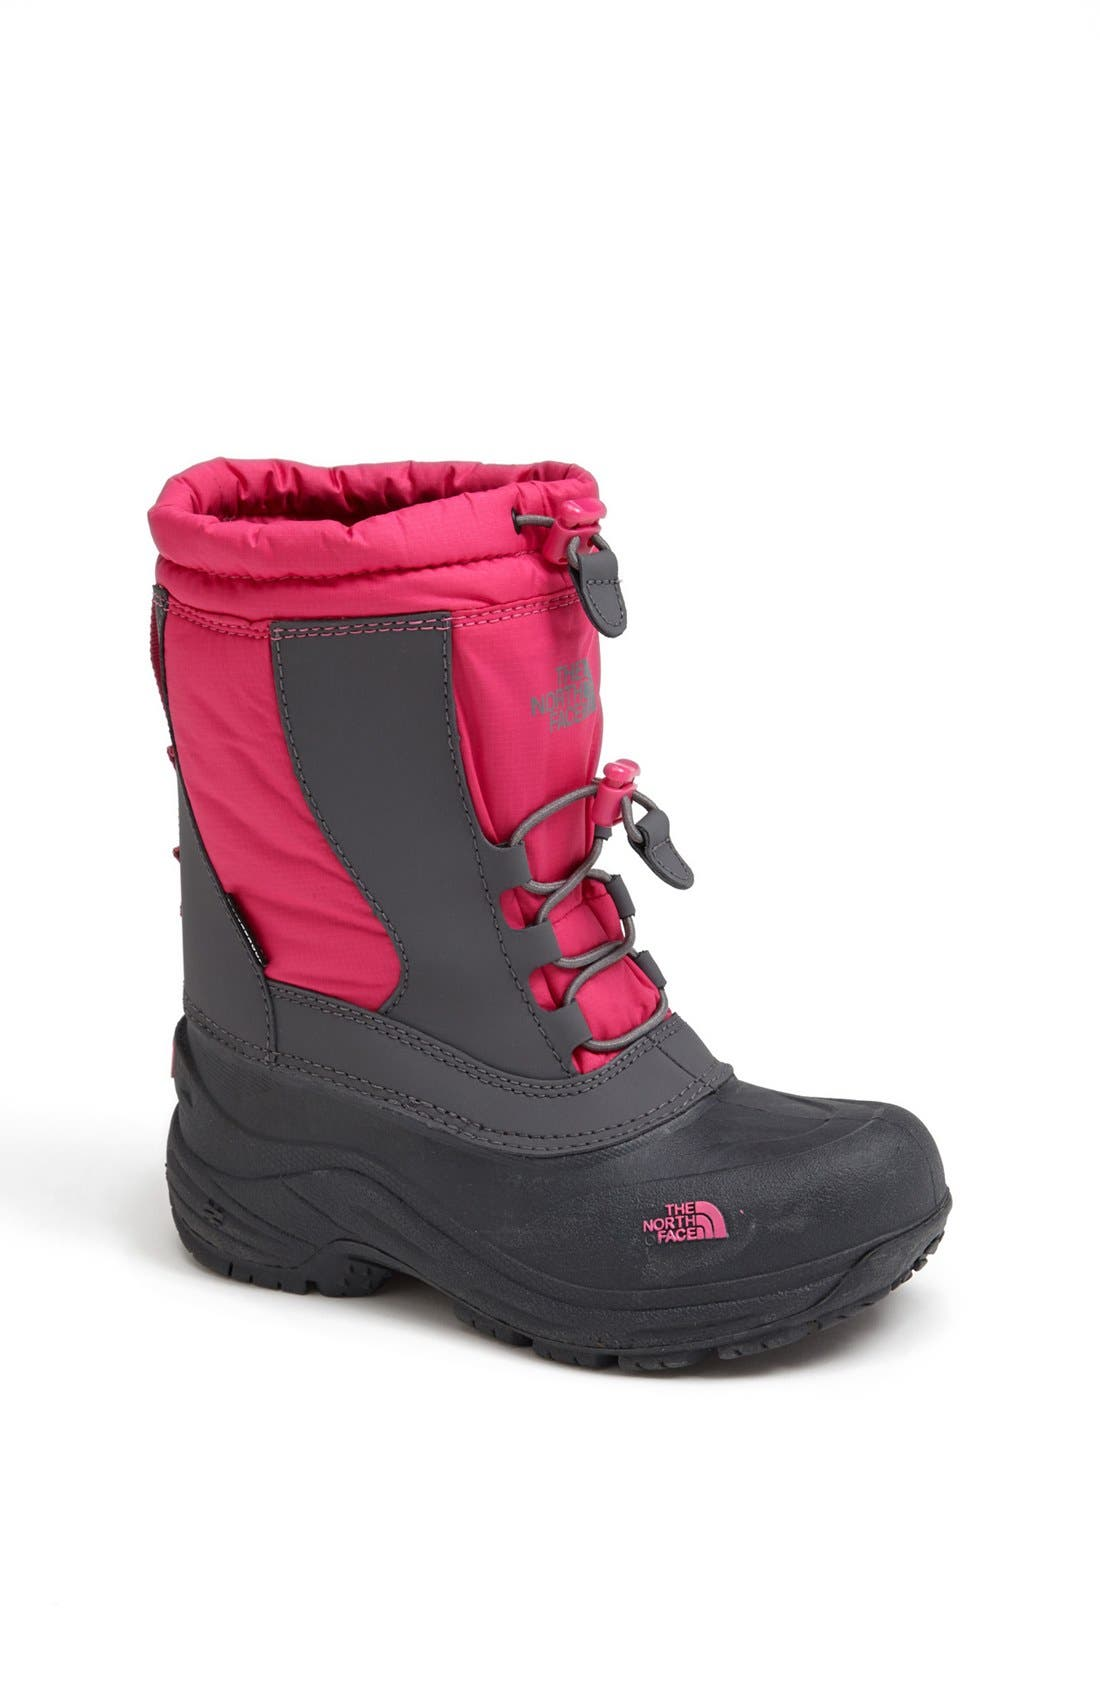 Alternate Image 1 Selected - The North Face 'Alpenglow' Boot (Toddler, Little Kid & Big Kid)